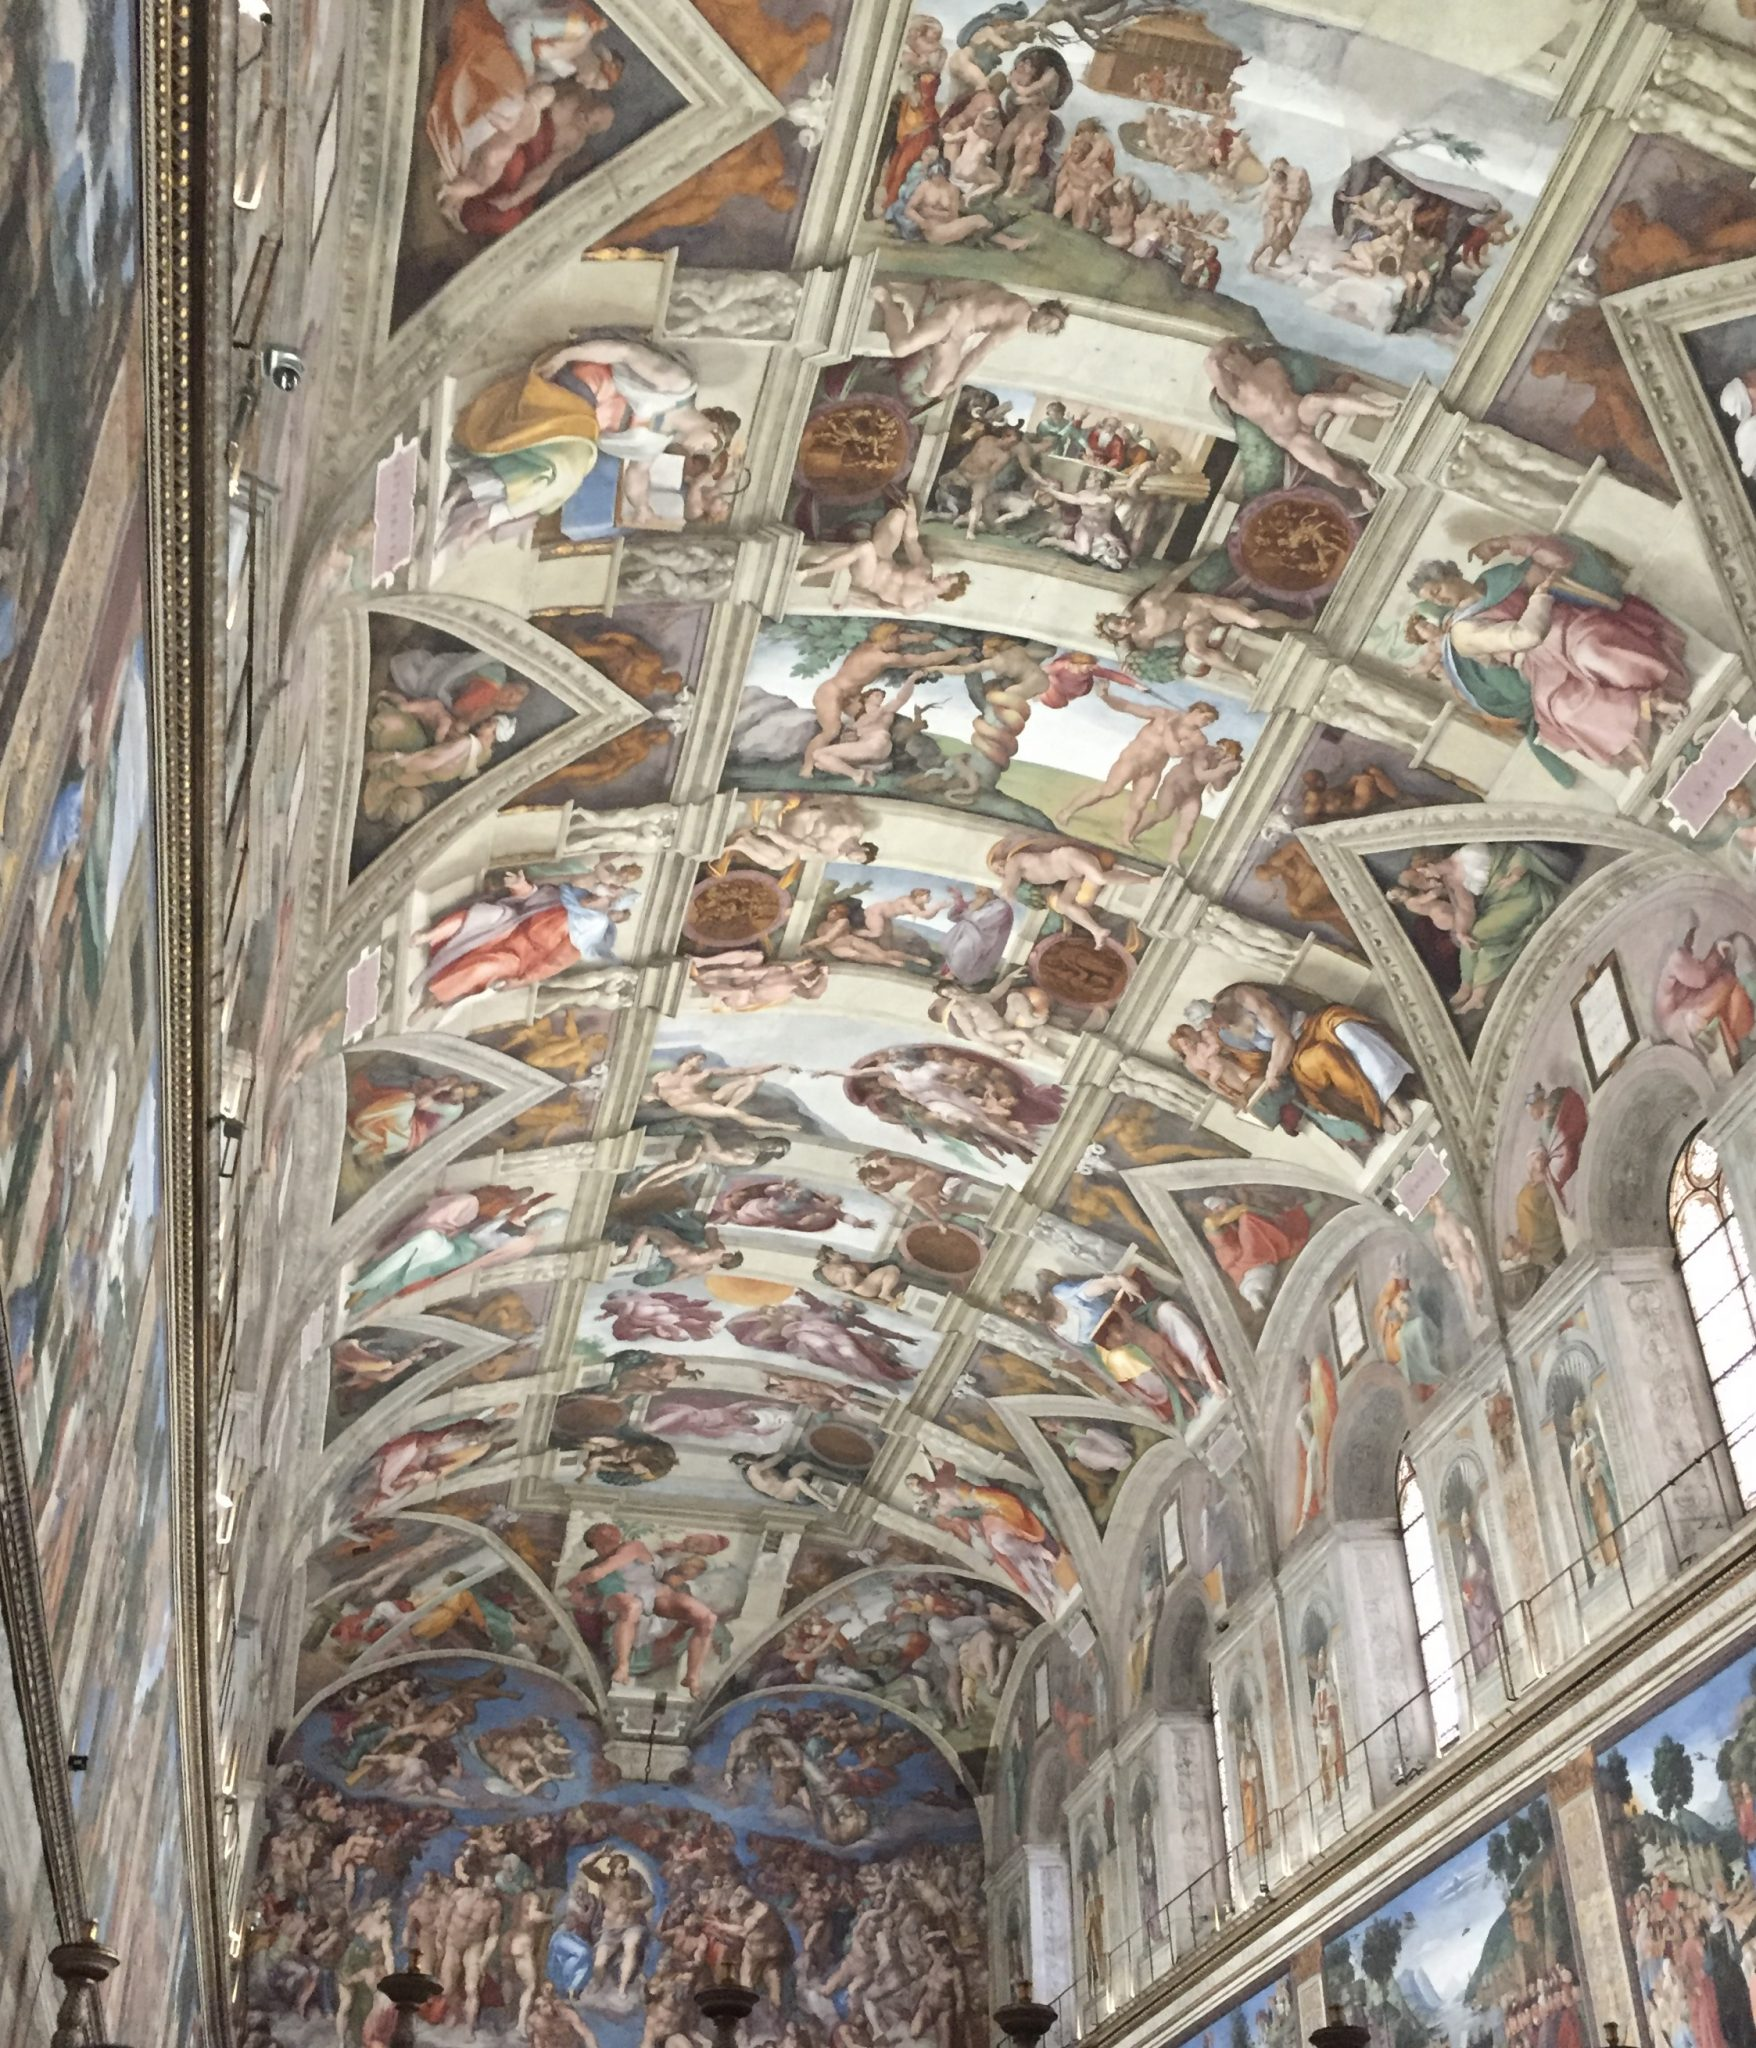 First Ital trip: See the Michelangelo masterpiece ceiling of the Sistine Chapel